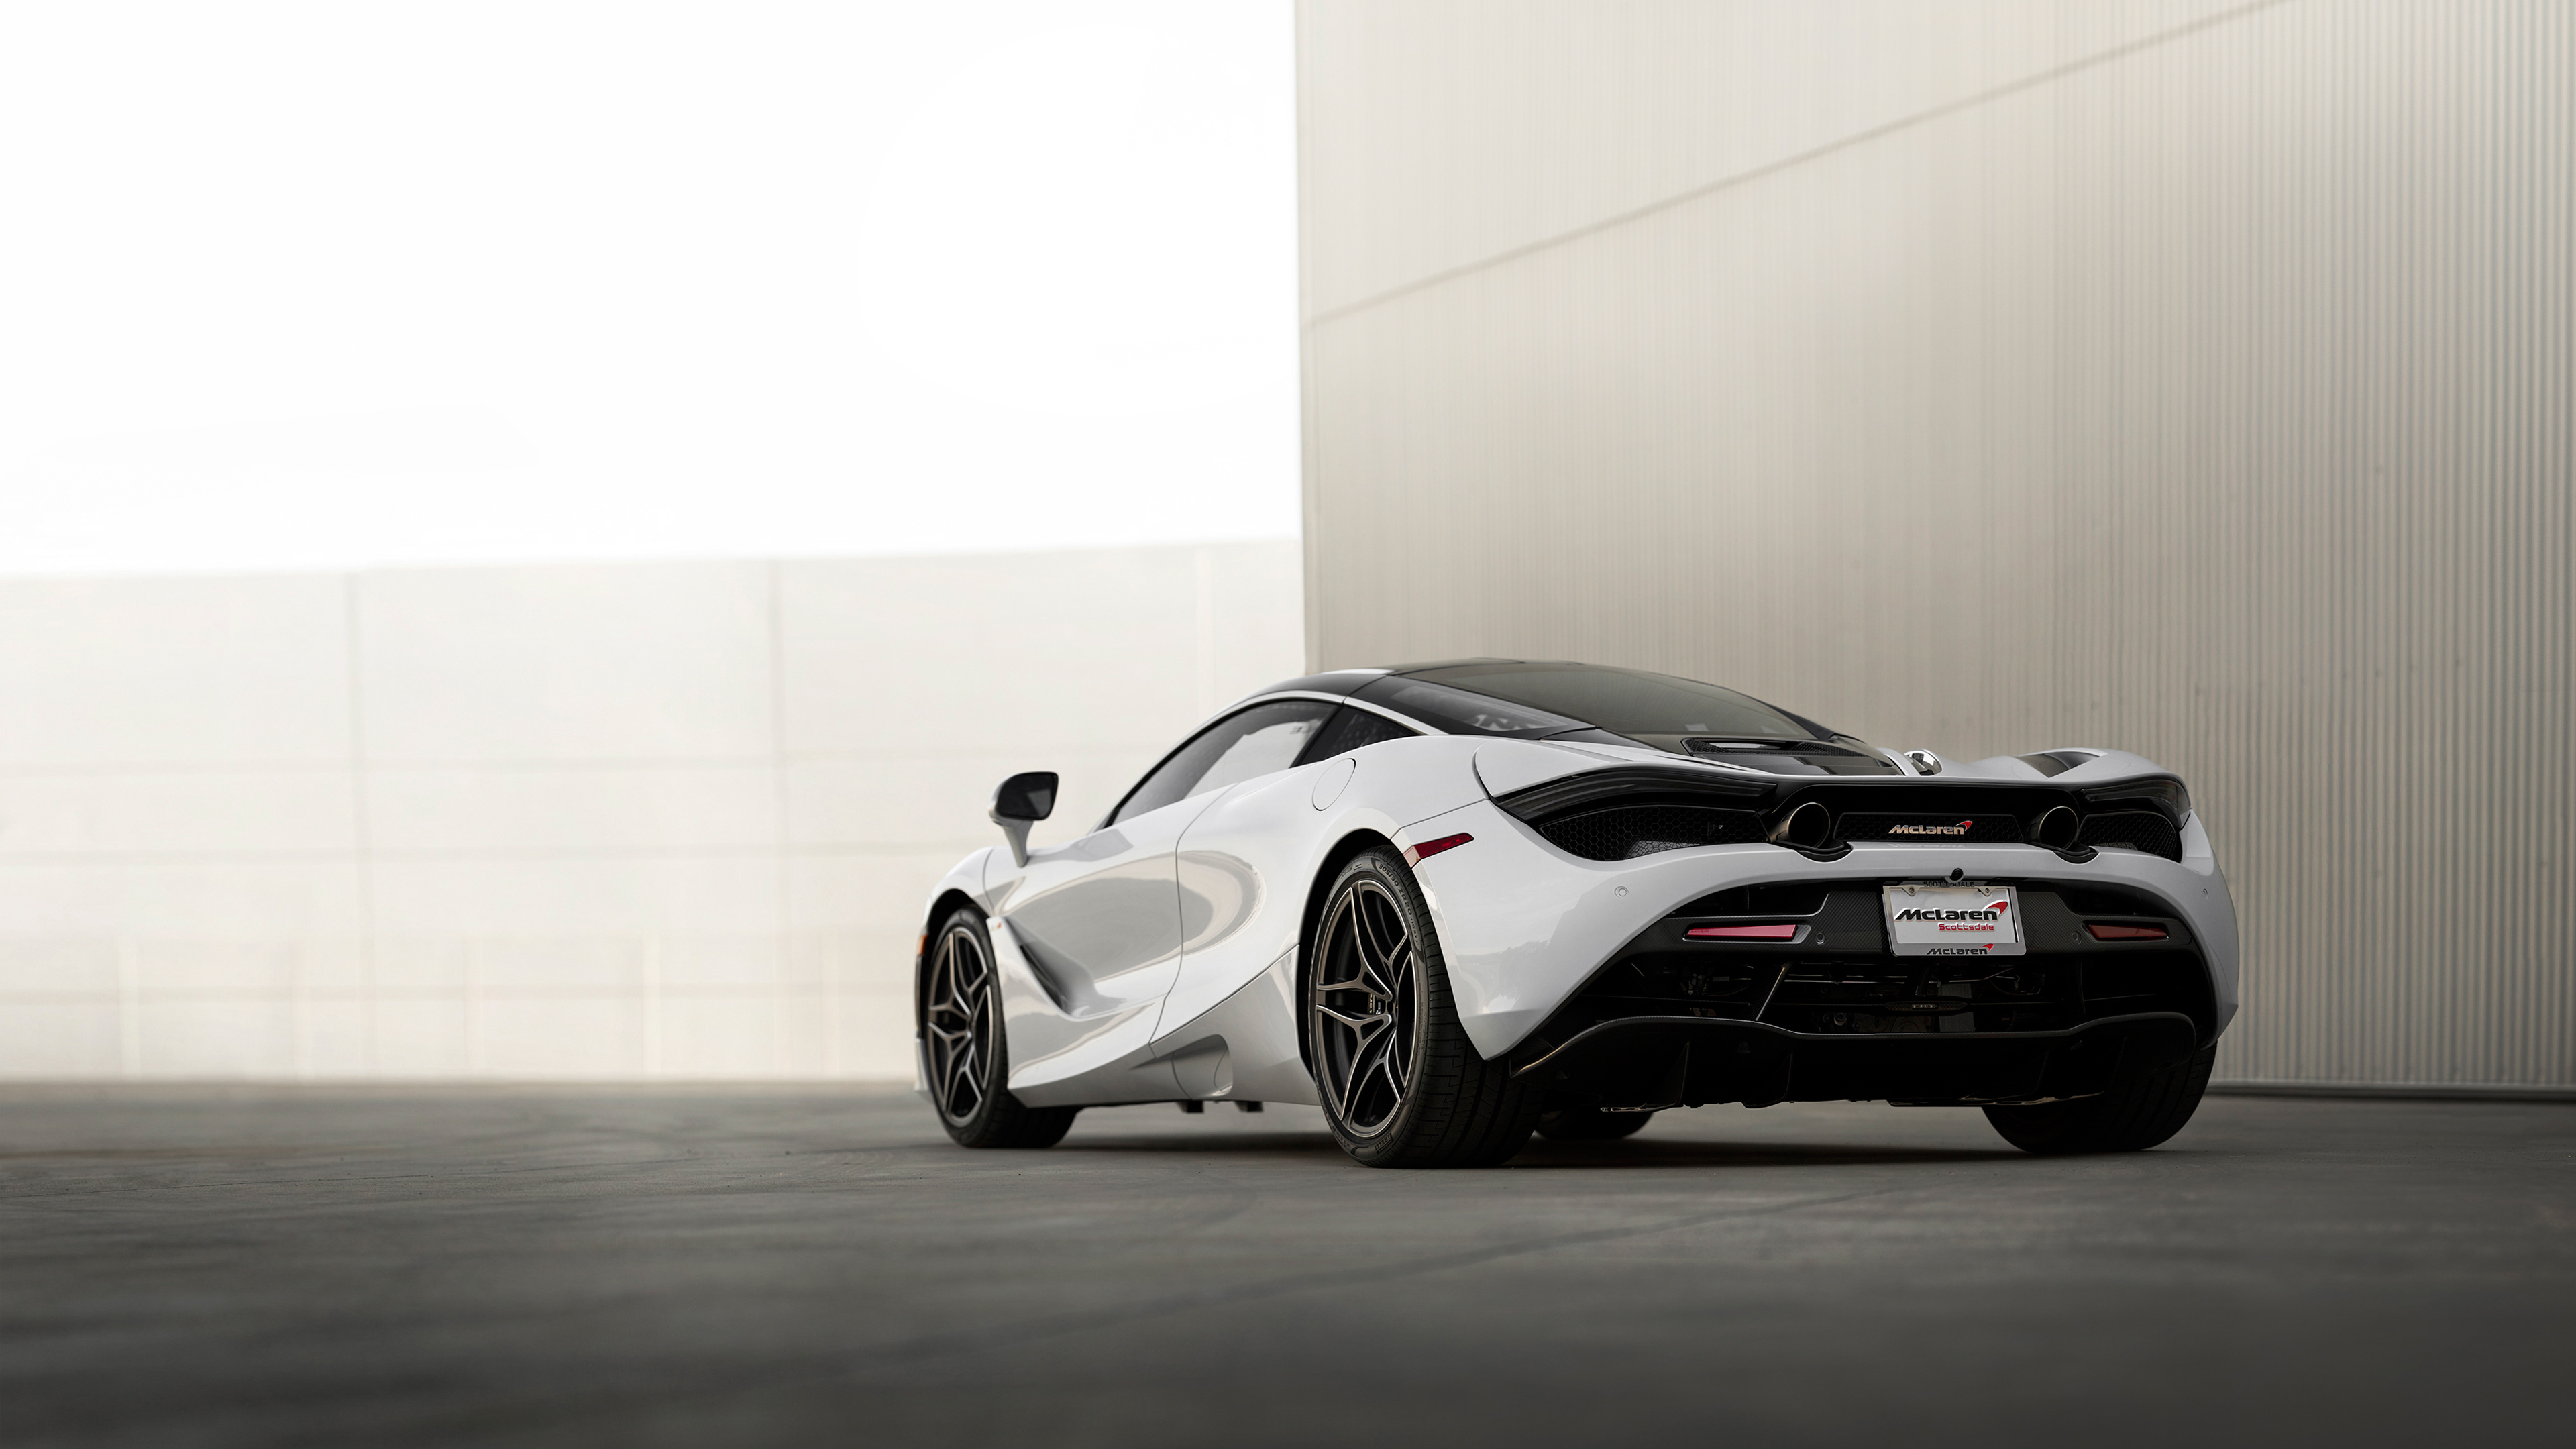 Mclaren 720s Coupe 4k Wallpaper Hd Car Wallpapers Id 8811